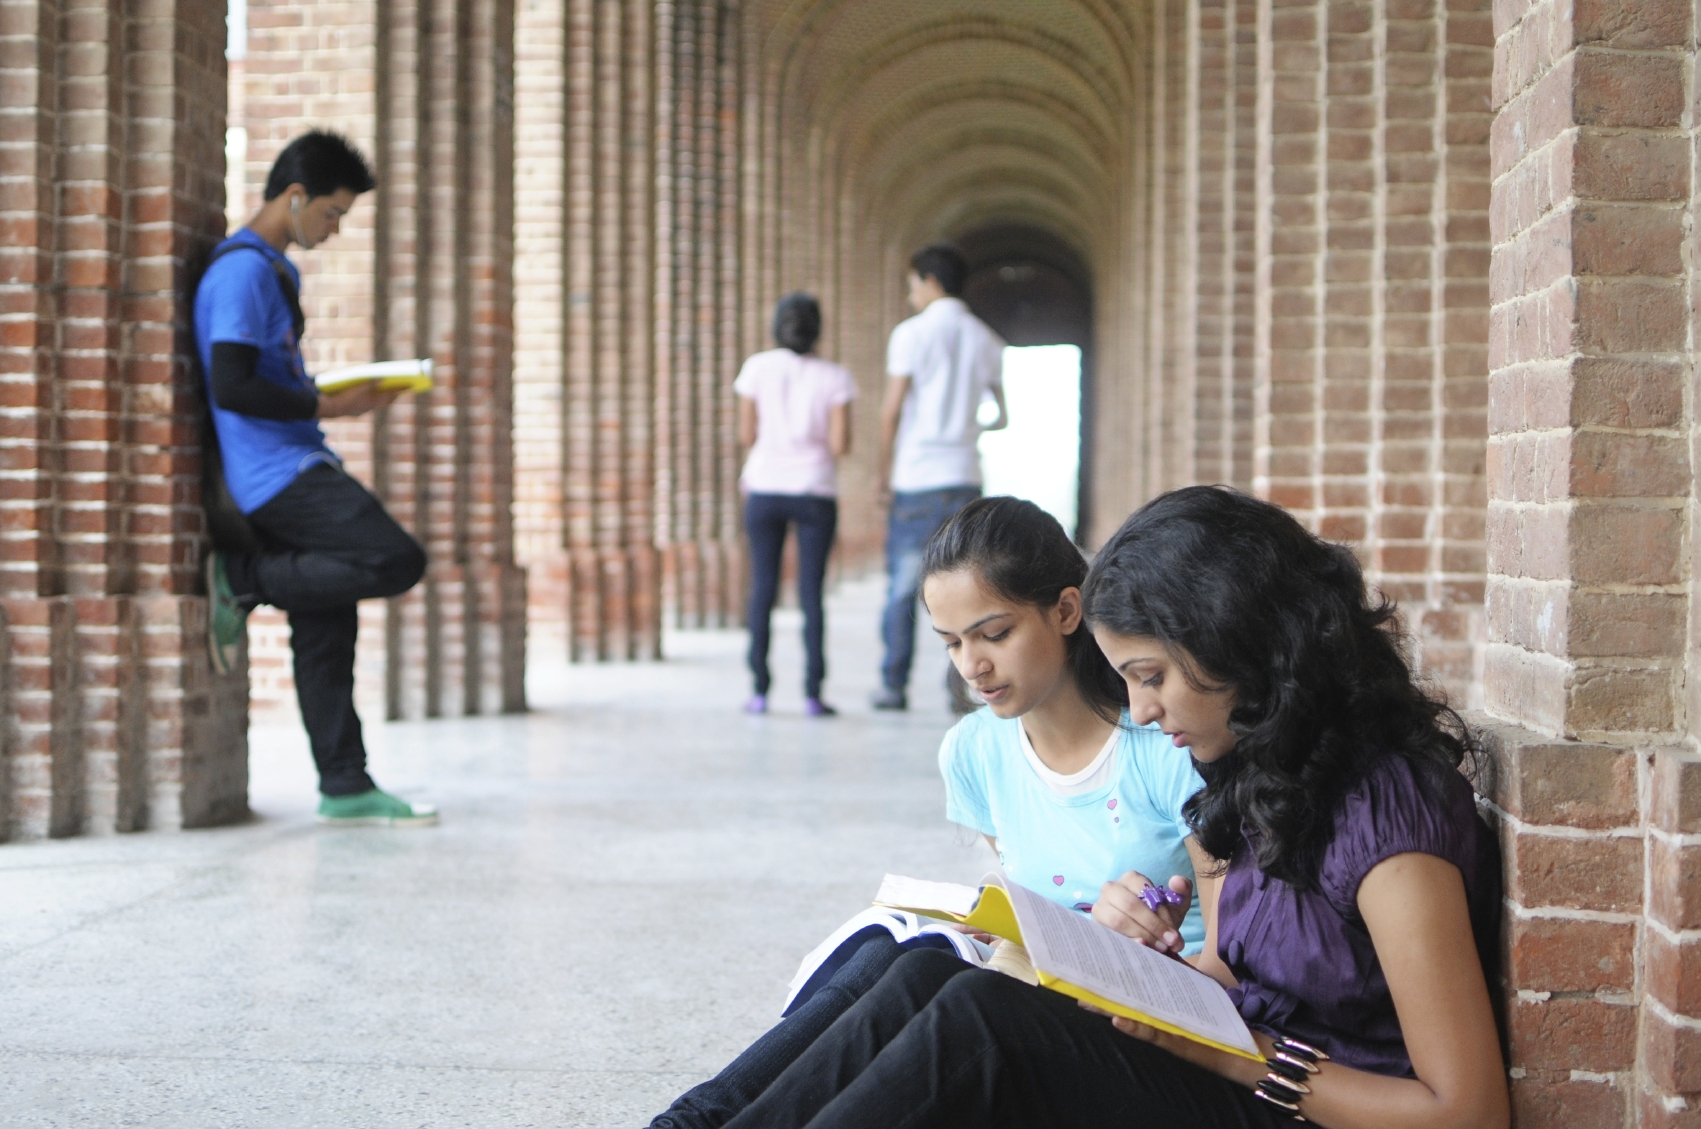 ways to destress in college Seniors neeha kadavakolanu, ajunee kohli, and keerthi krishnan share their ways in coping with rejections, ways to destress, and the overall environment of college.